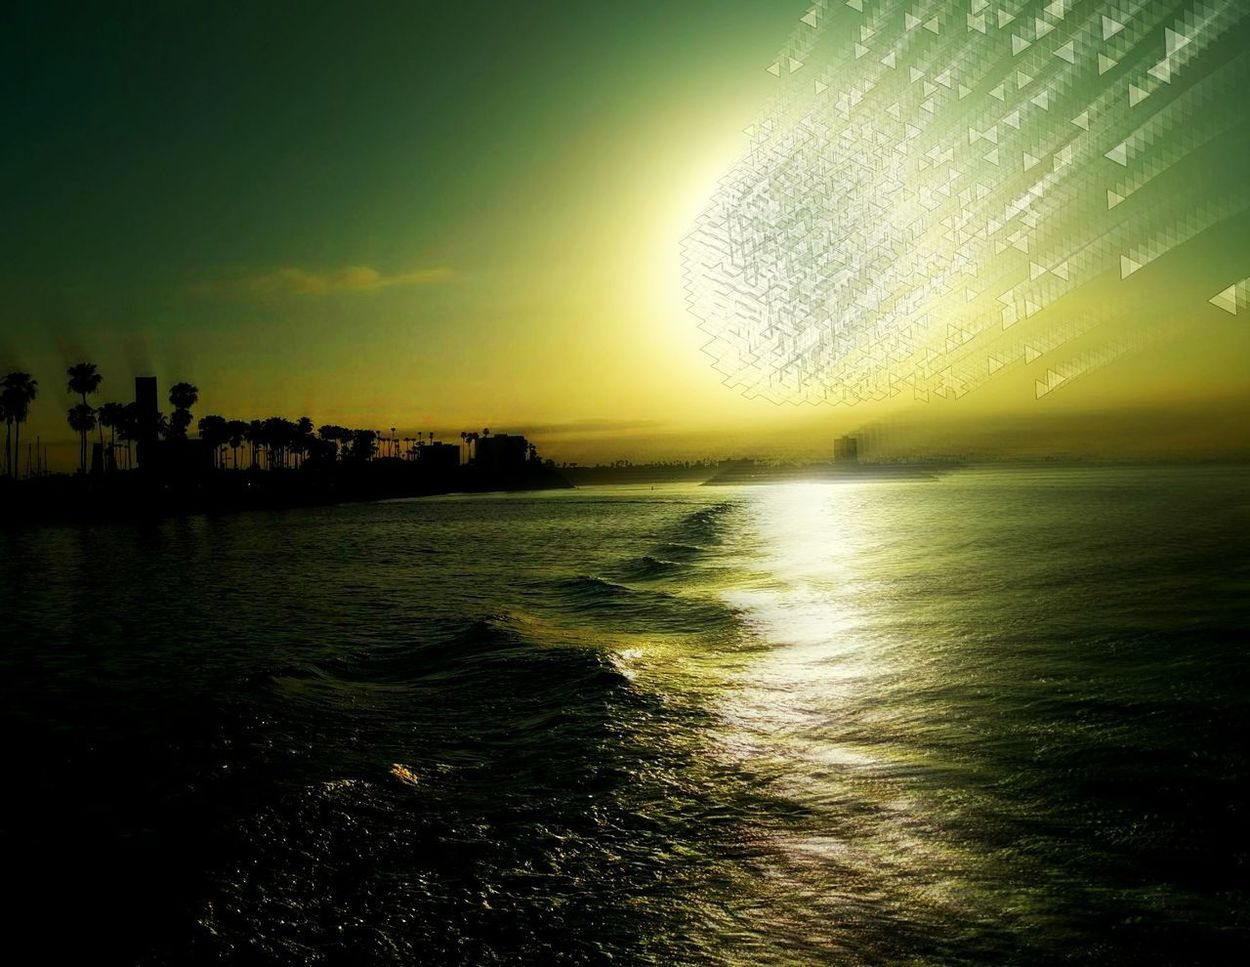 Water Sunset Sky Nature Sea Scenics Silhouette Beach Horizon Over Water Outdoors Truth Niburu Binary Stars Astroidsart Meteor Shower Preparation  Awakening Ascention Repentance